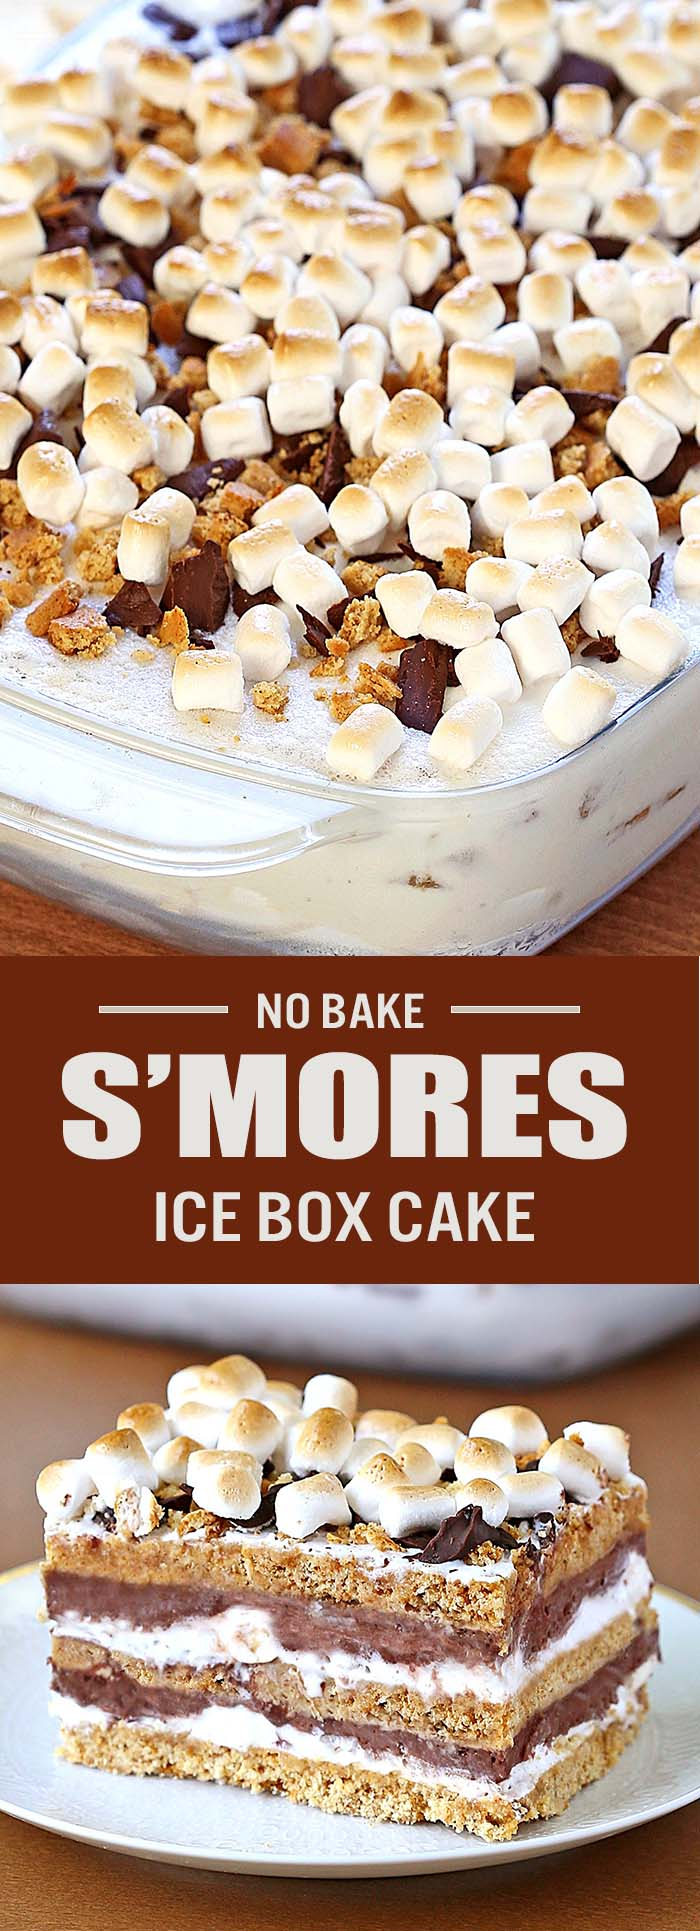 No Bake S'mores Icebox Cake | Cakescottage